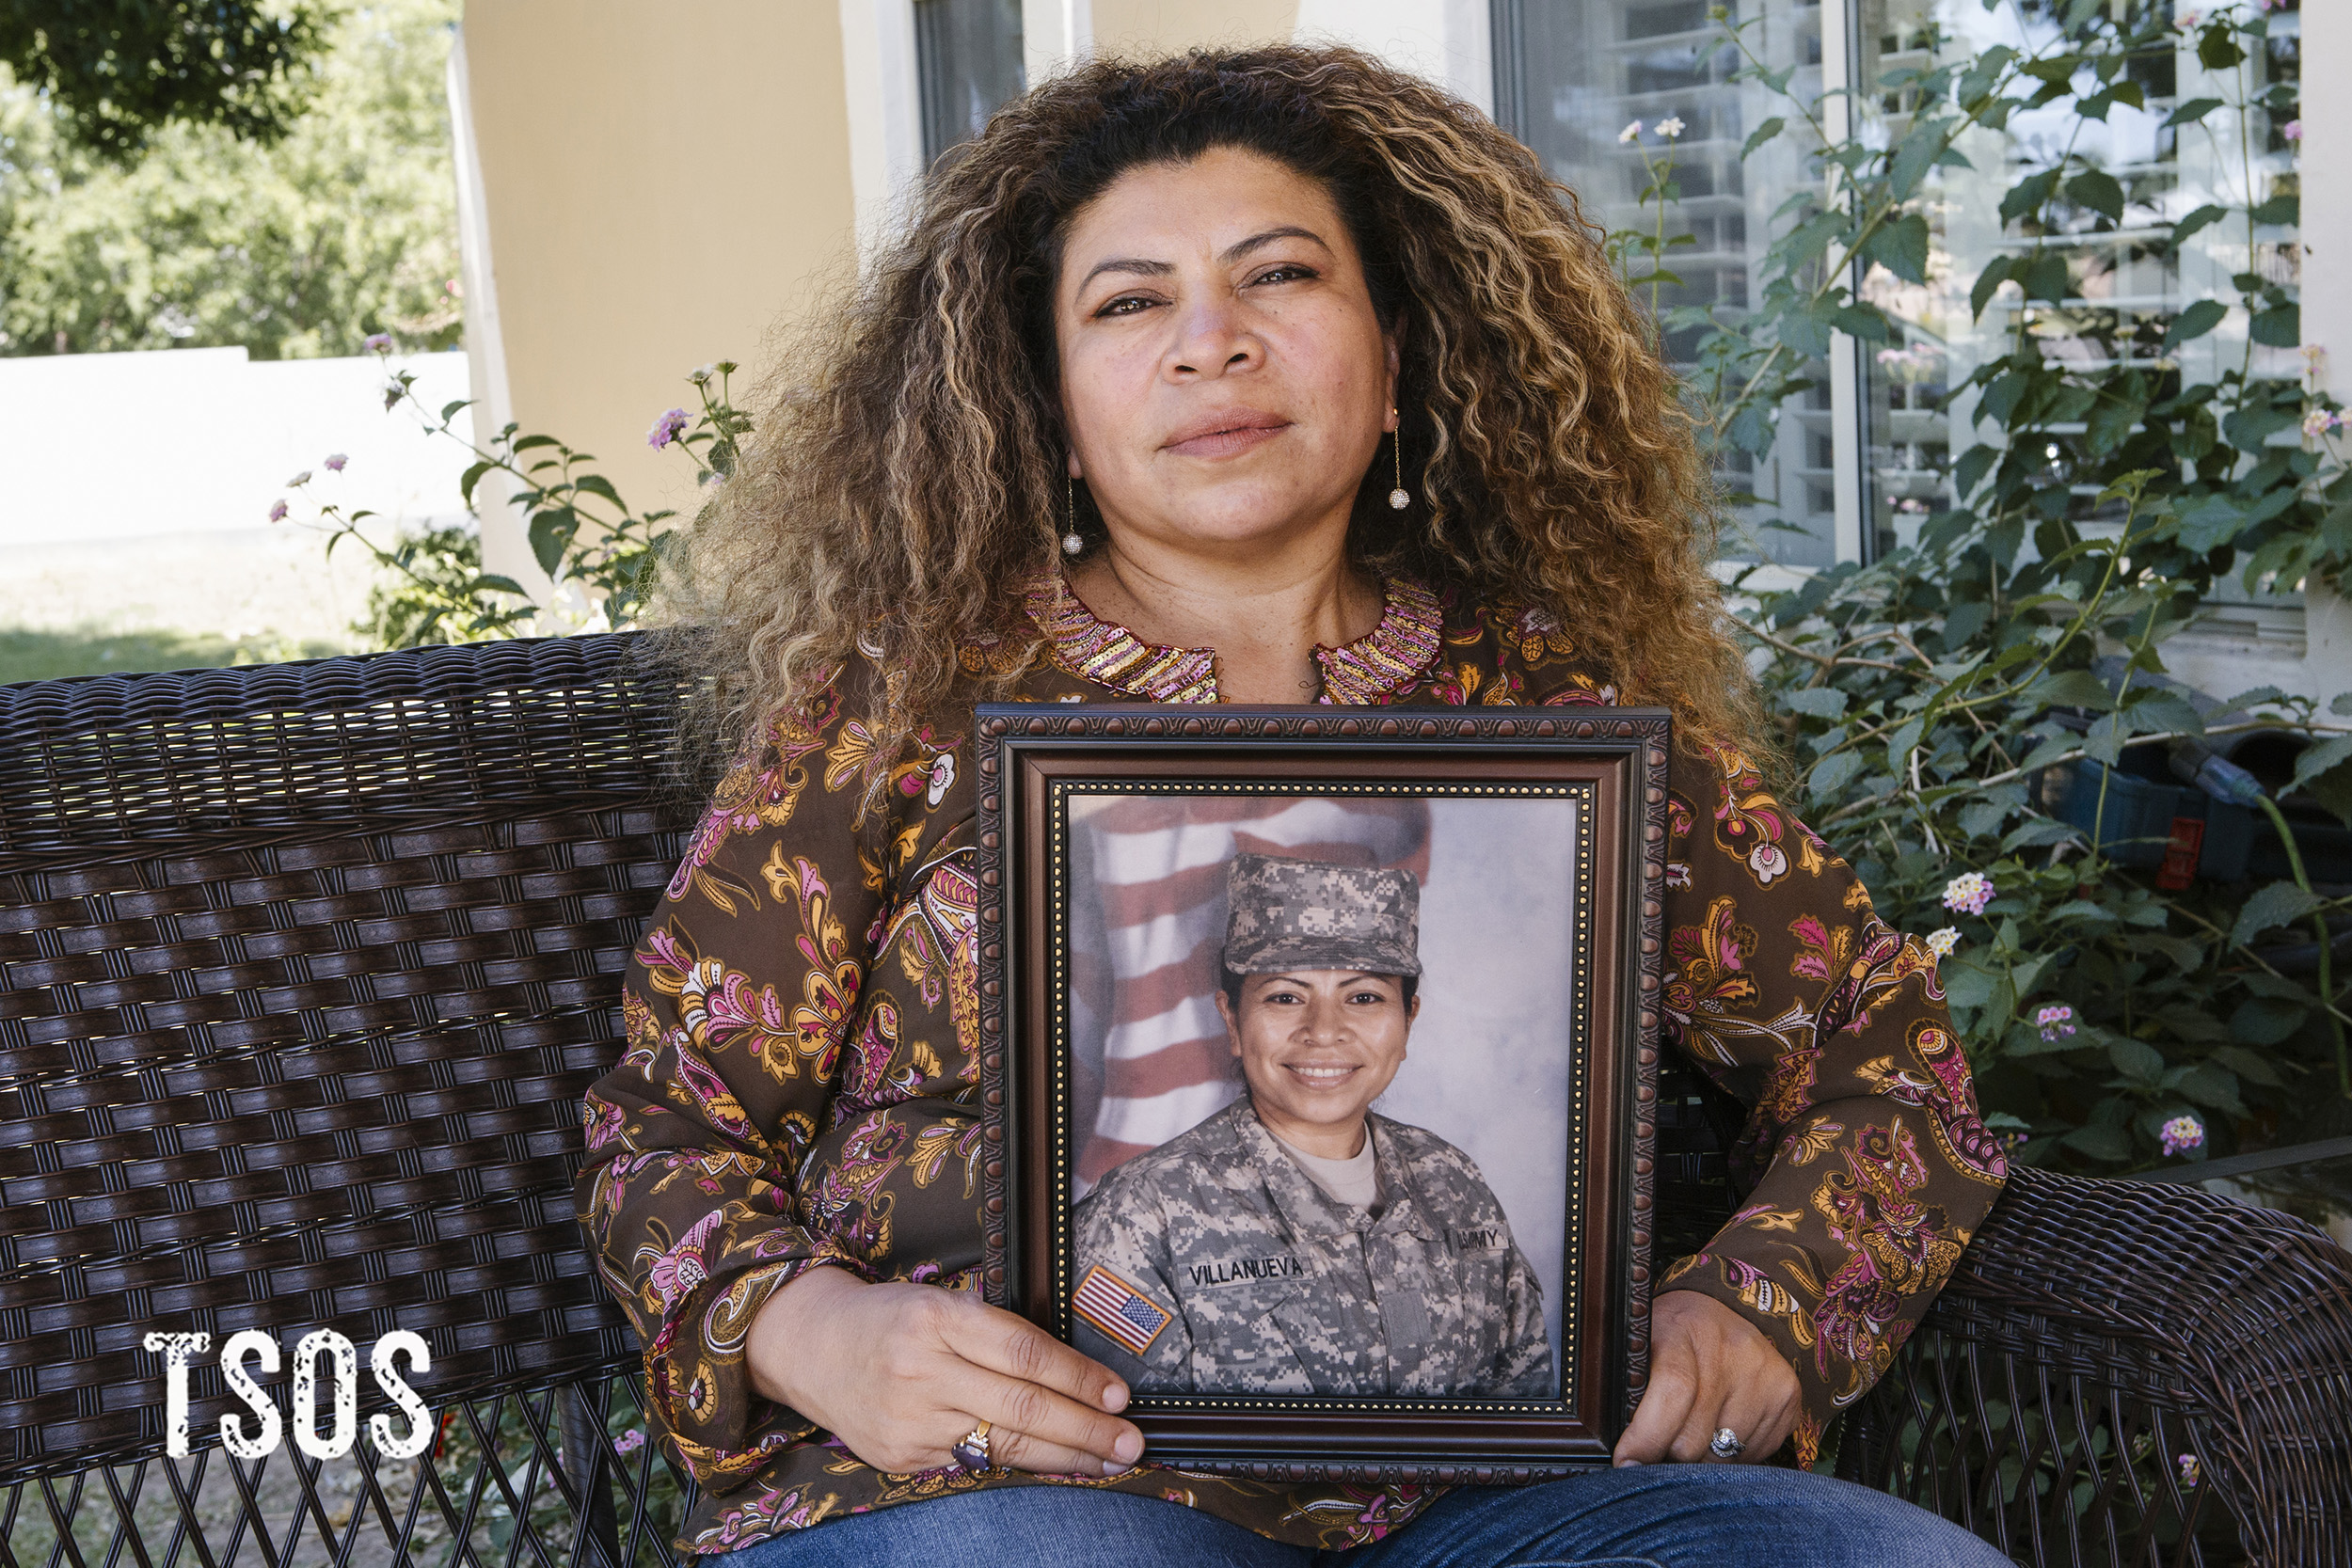 Marta served for years overseas, including time in Iraq, fulfilling her childhood dream of becoming an American soldier.